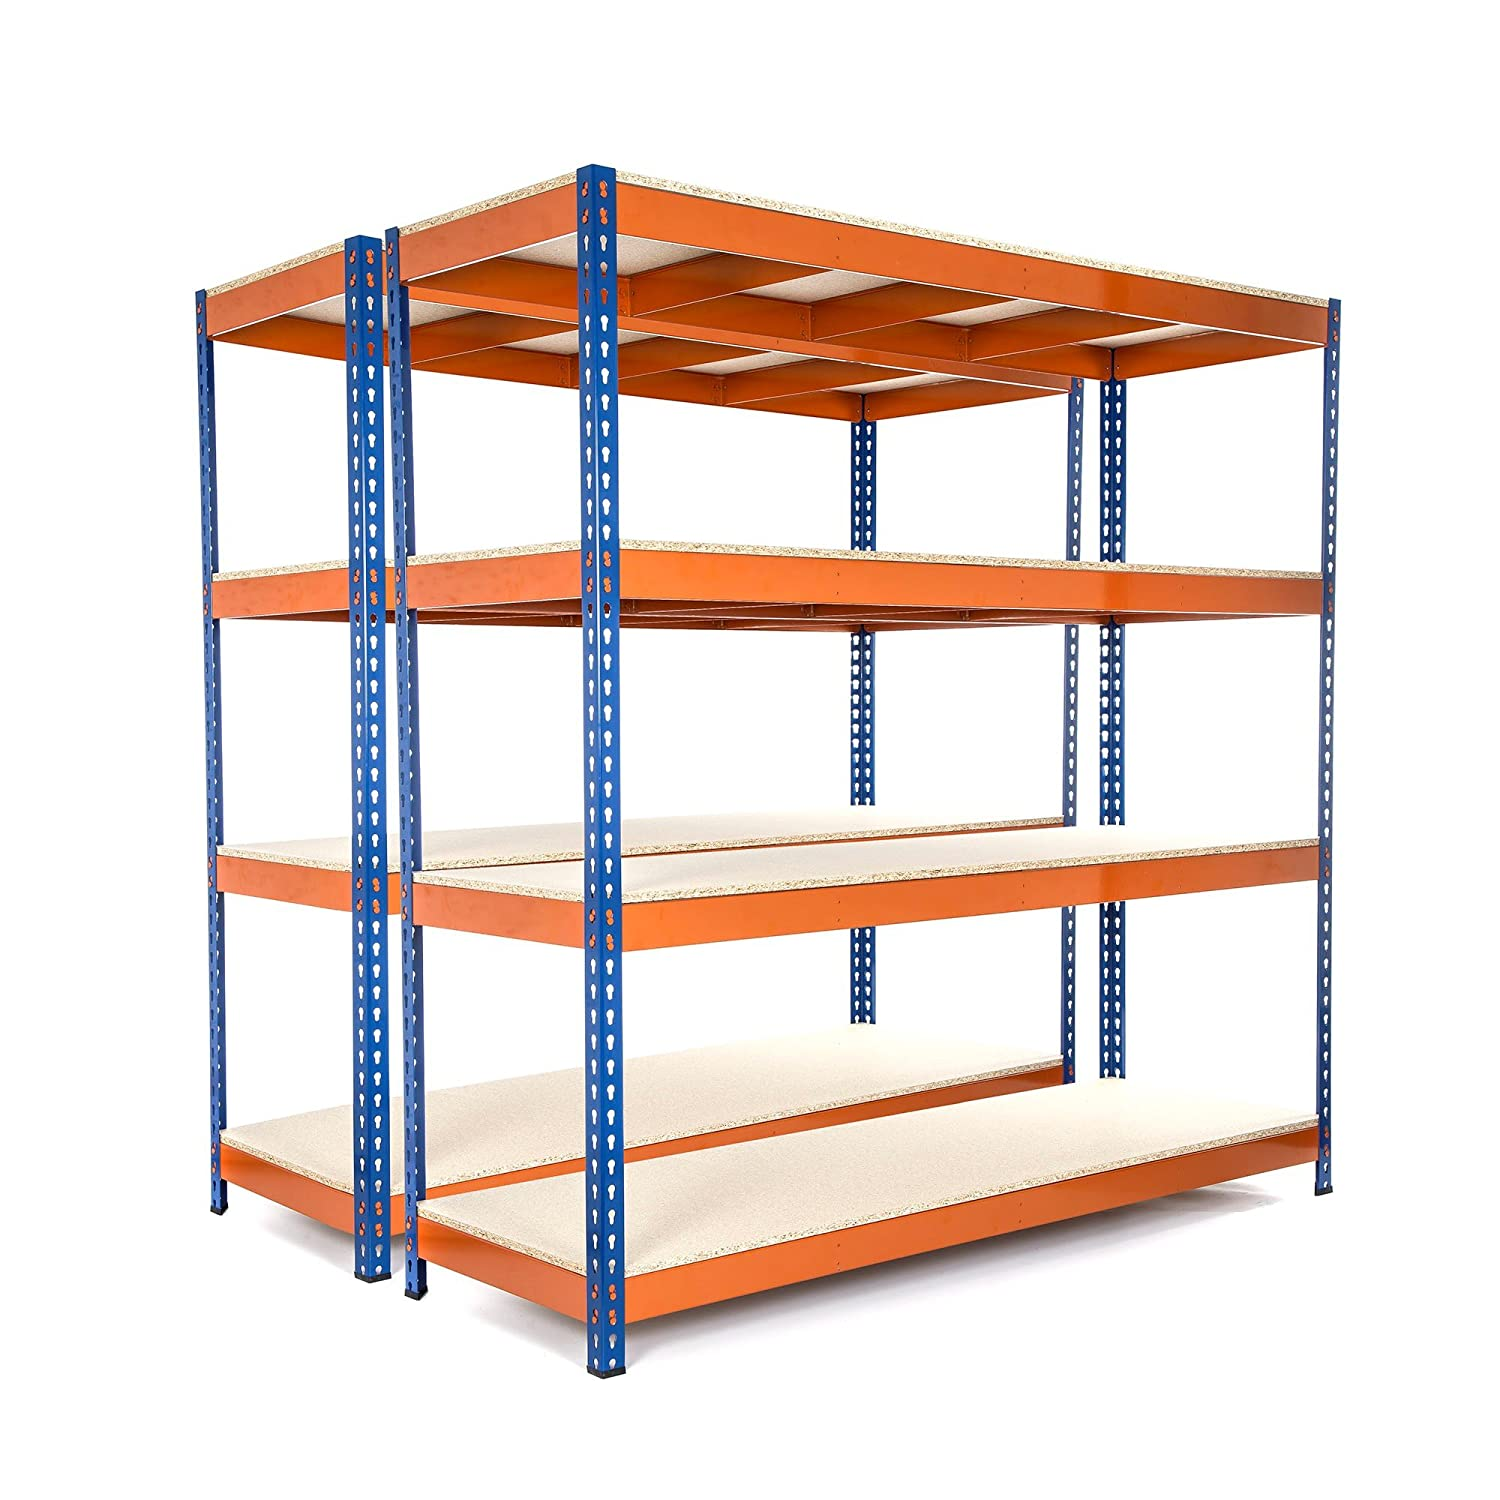 2 Bay Heavy Duty Garage Racking 500kg UDL shelving unit 1800mm H x 1800mm W x 600mm D FREE NEXT DAY DELIVERY